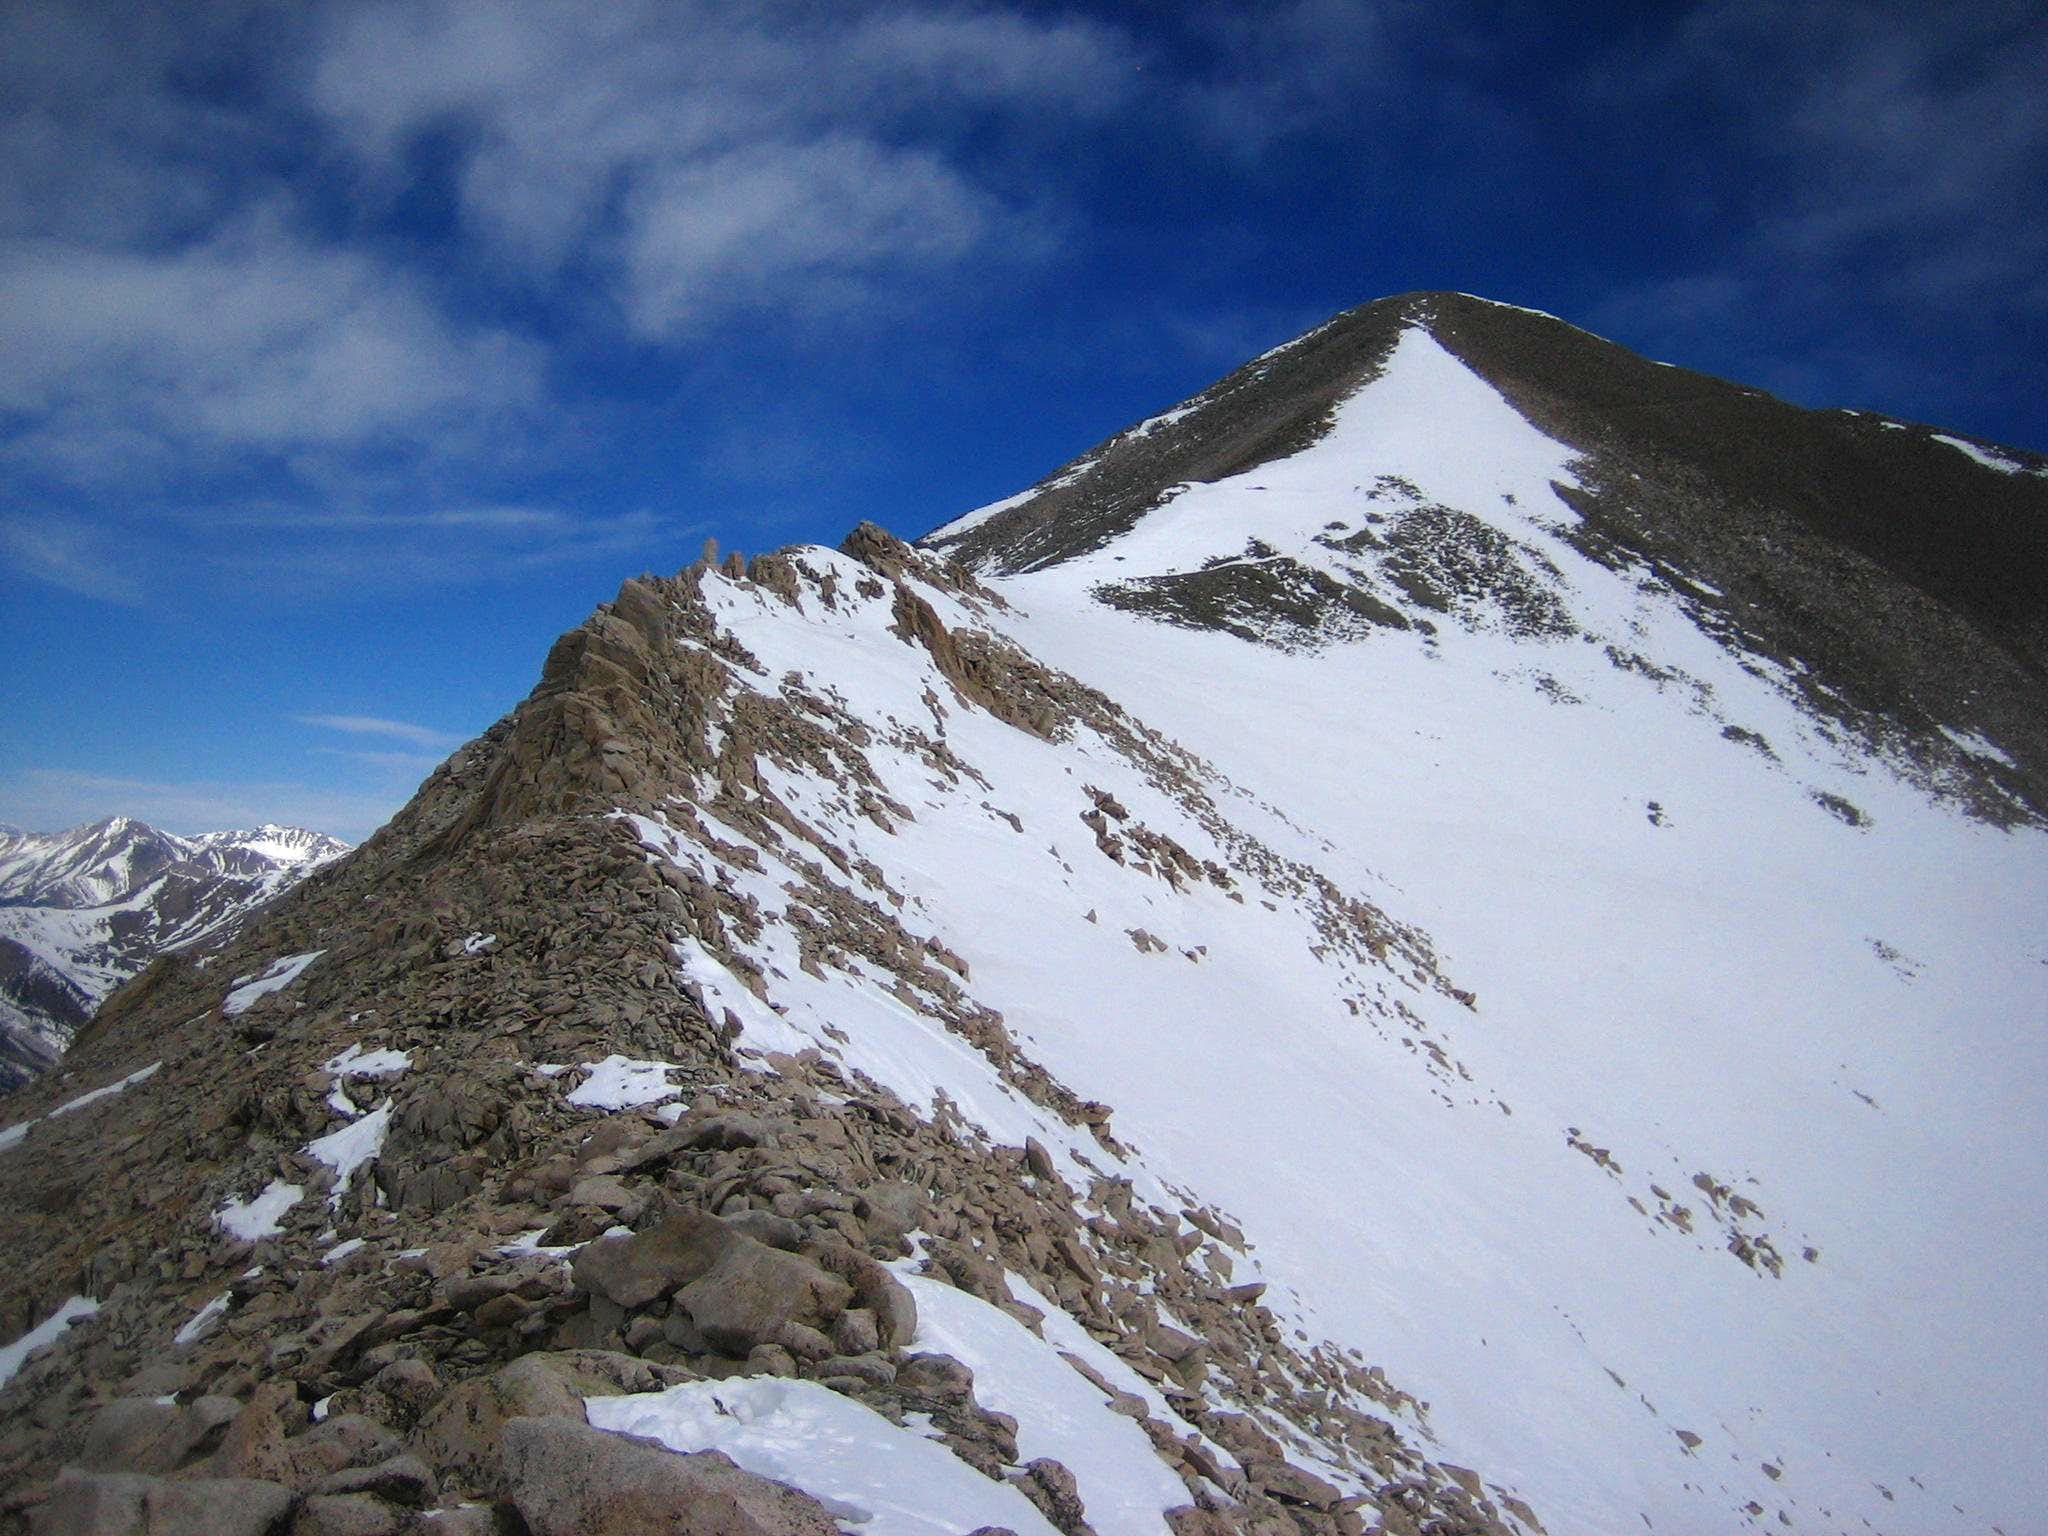 Mt. Antero West Slopes in Winter